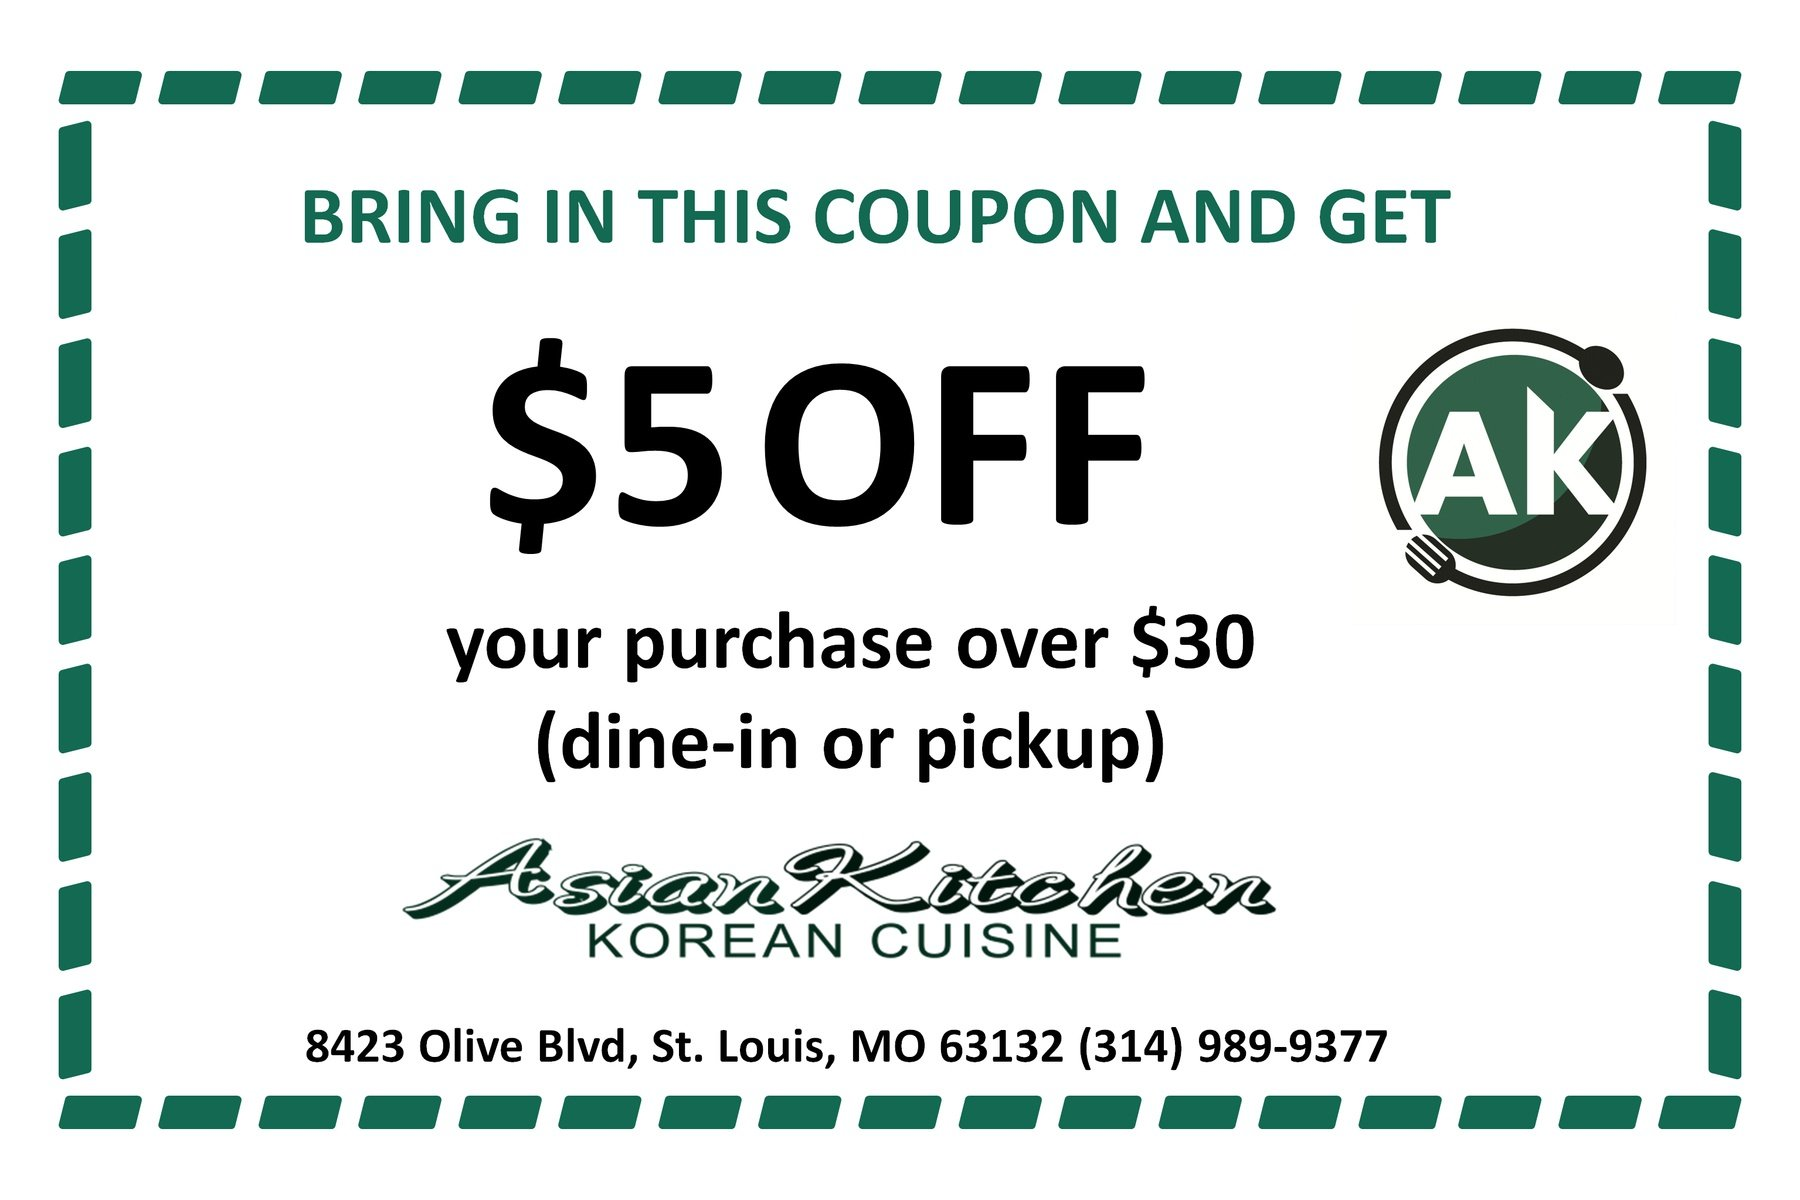 $5 Off Printable Coupon, Asian Kitchen Korean Cuisine in St. Louis